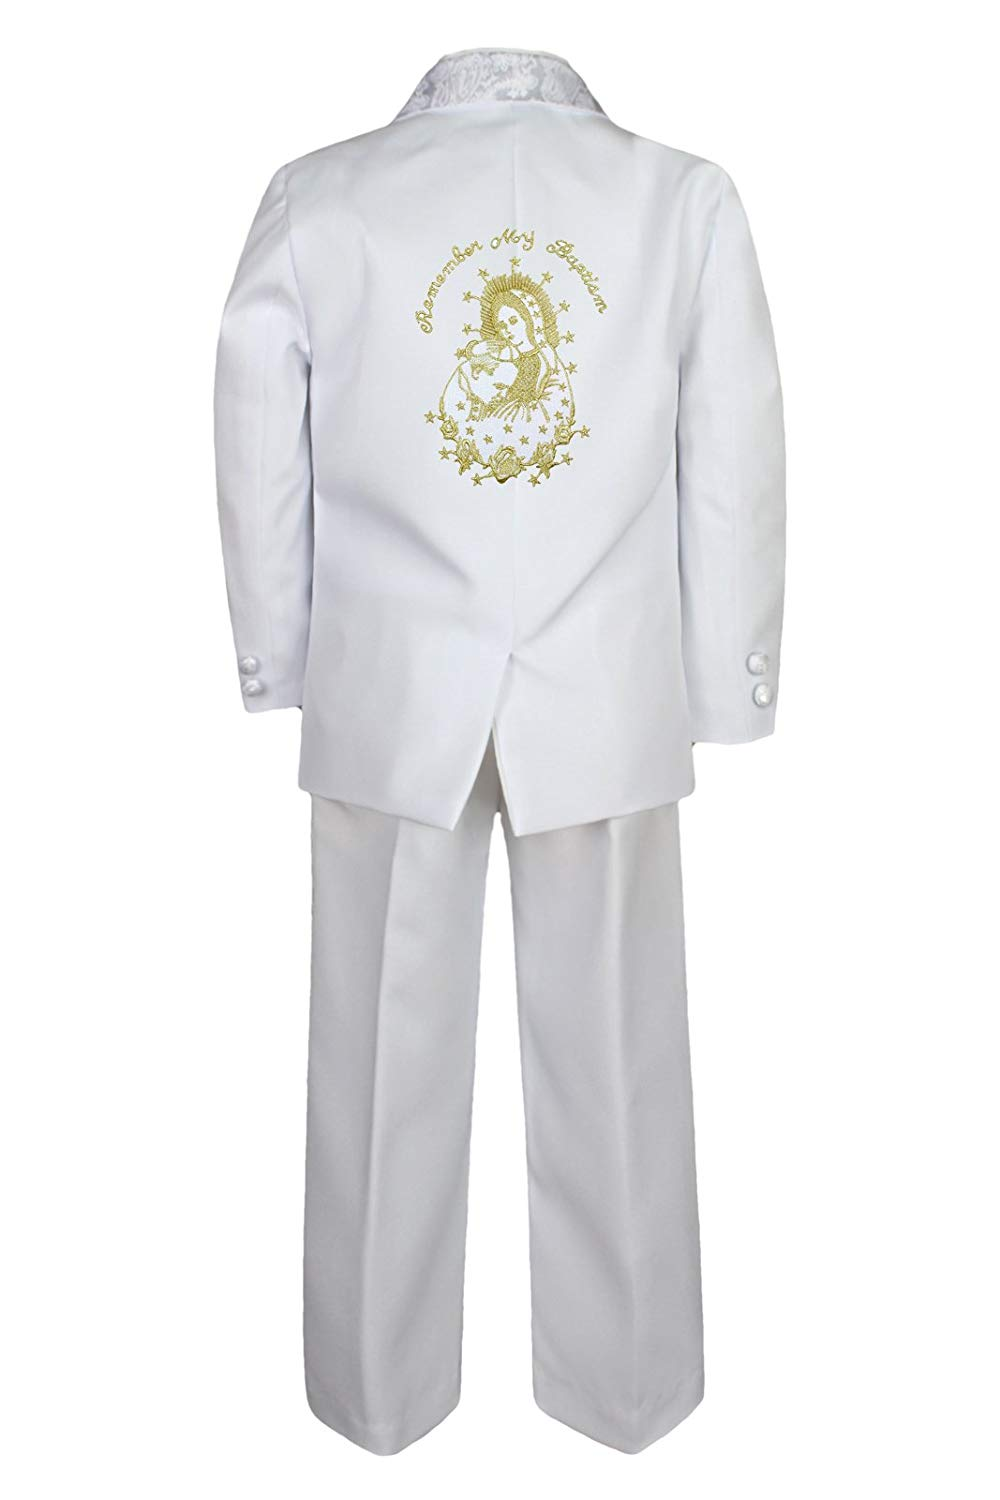 5e4b9599f8b9 Cheap Baptism Tuxedo For Baby Boy